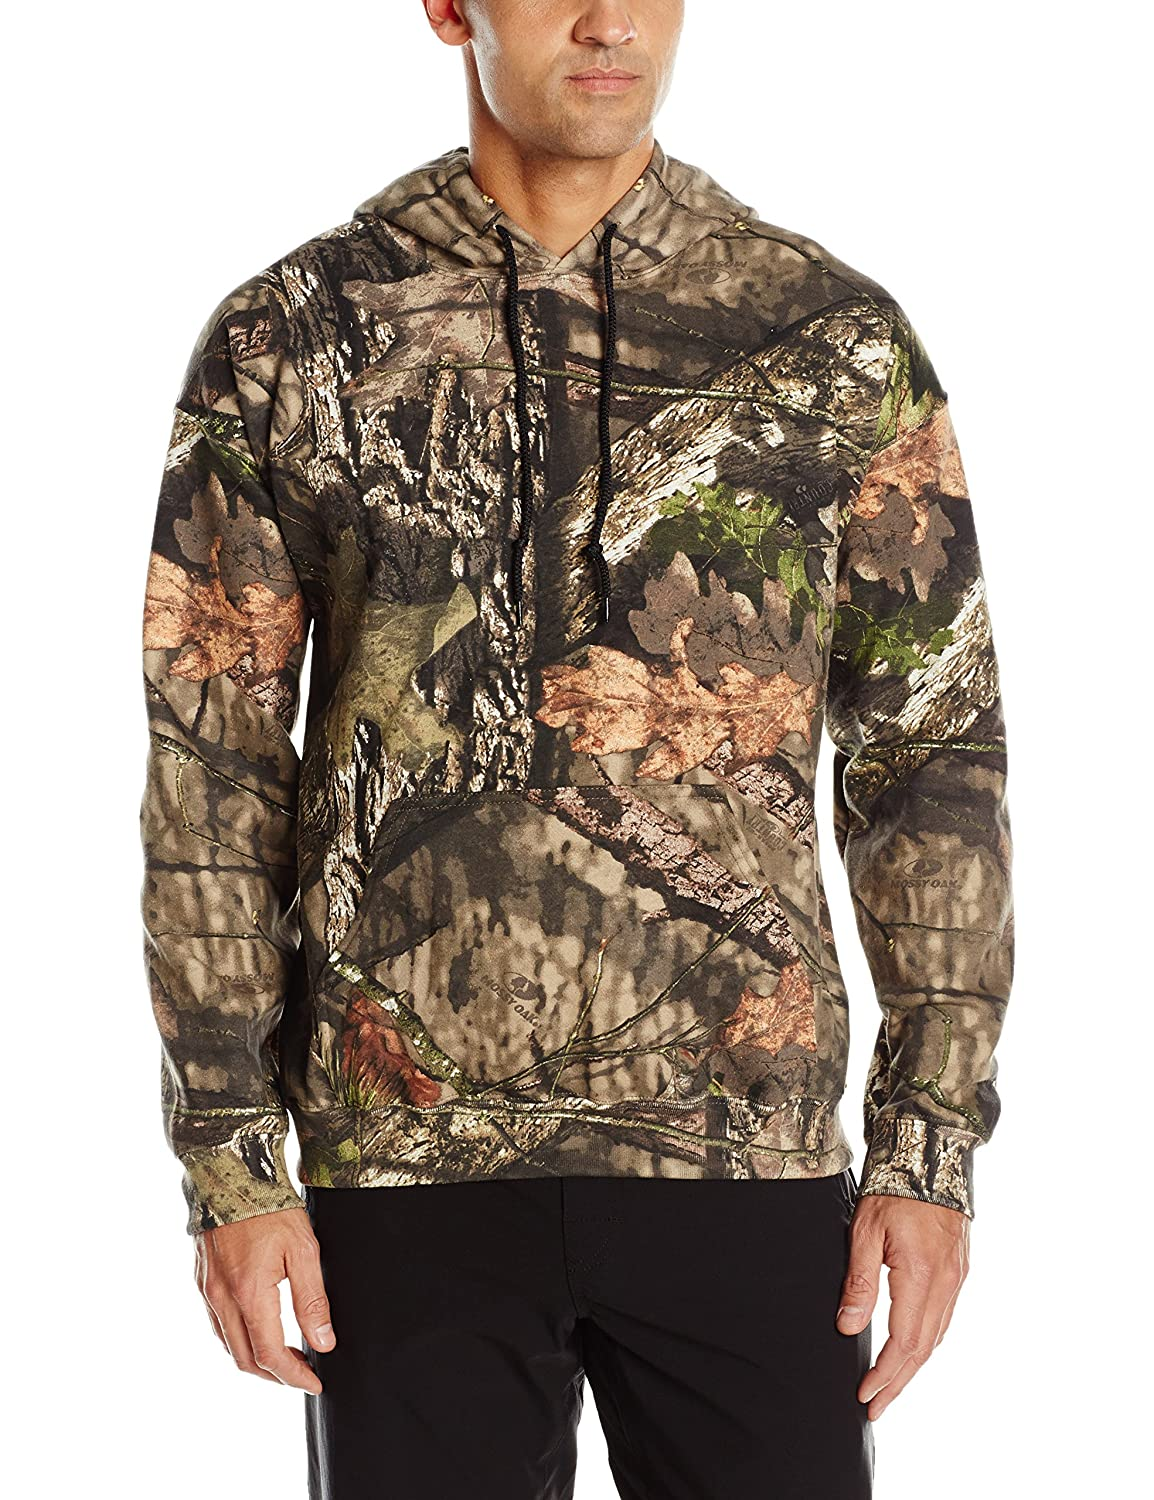 c3810155adc16 Amazon.com   Mossy Oak Men s Camo Hoodie   Sports   Outdoors